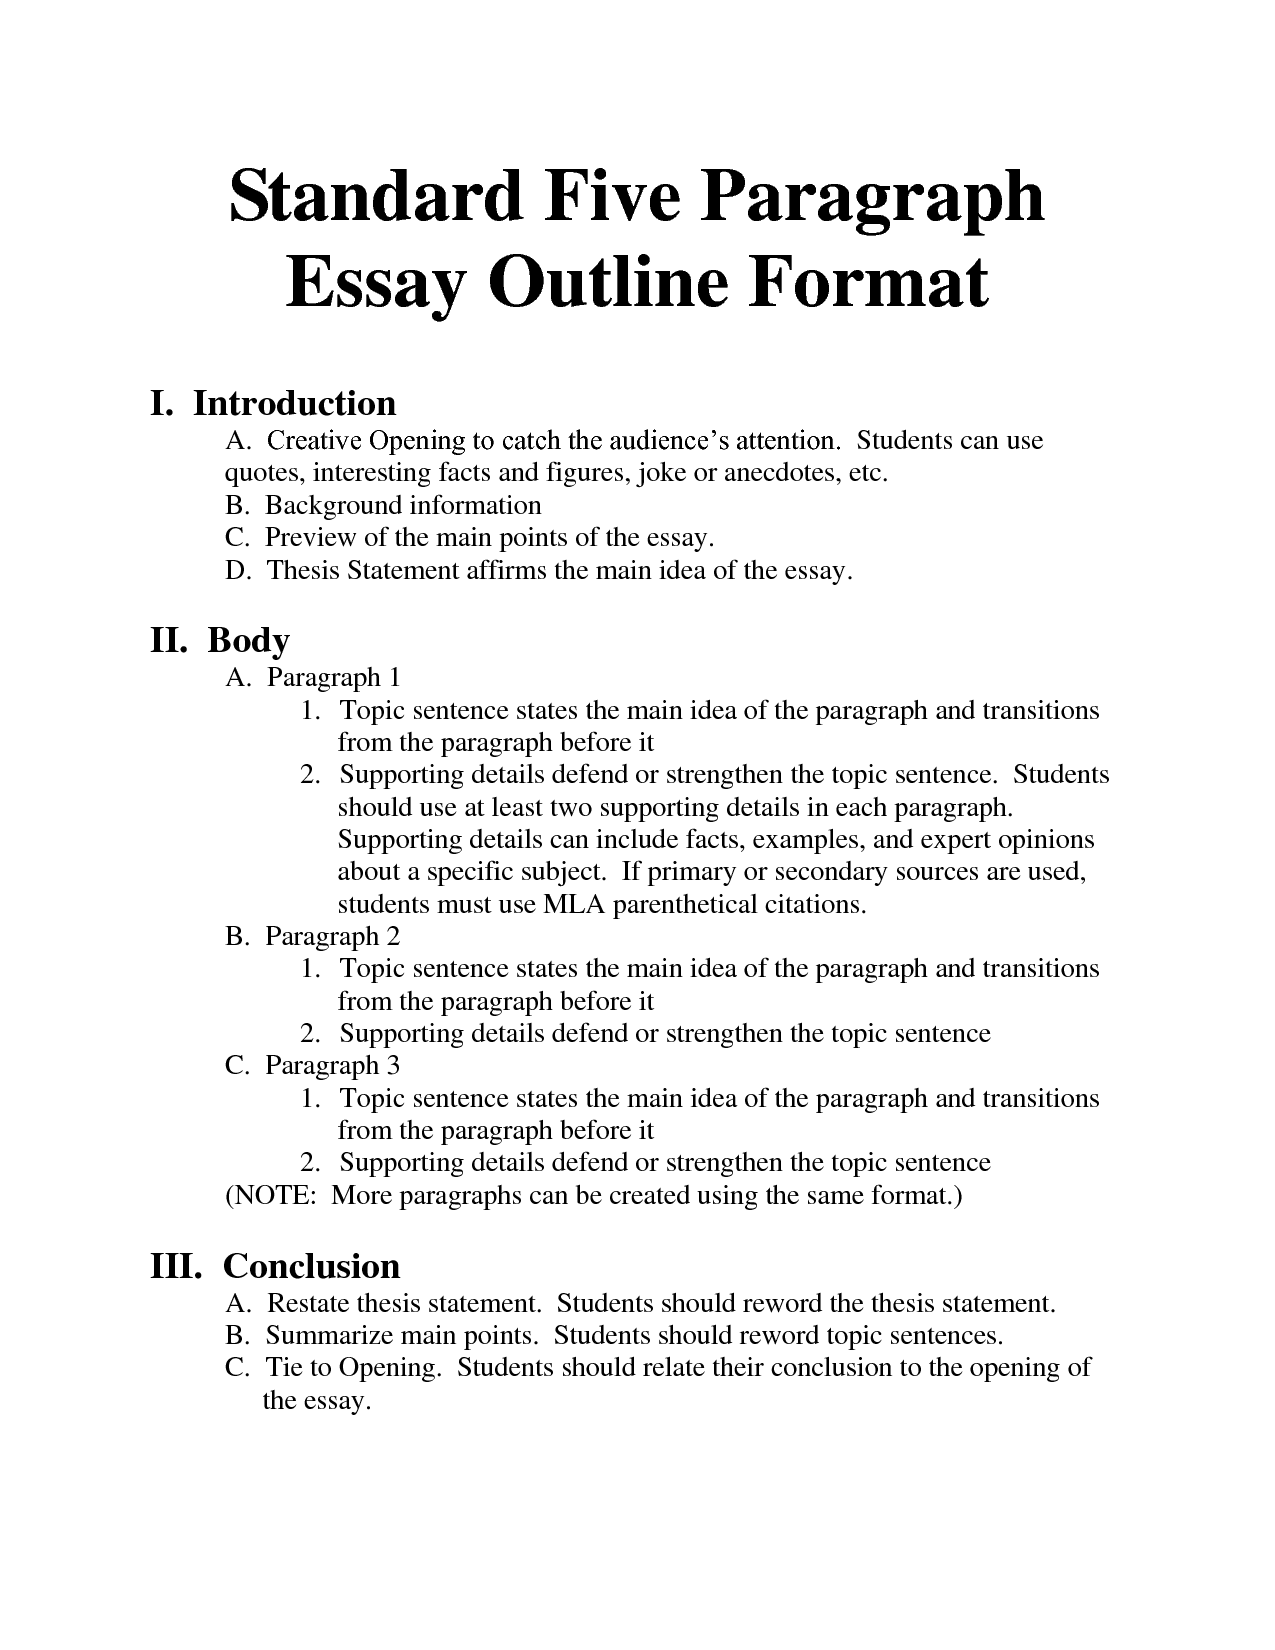 Standard Essay Format  Bing Images  Essays Homeschool  Pinterest  Standard Essay Format  Bing Images How To Write An Essay Proposal Example also Coffee Tables Walmart The Importance Of English Essay